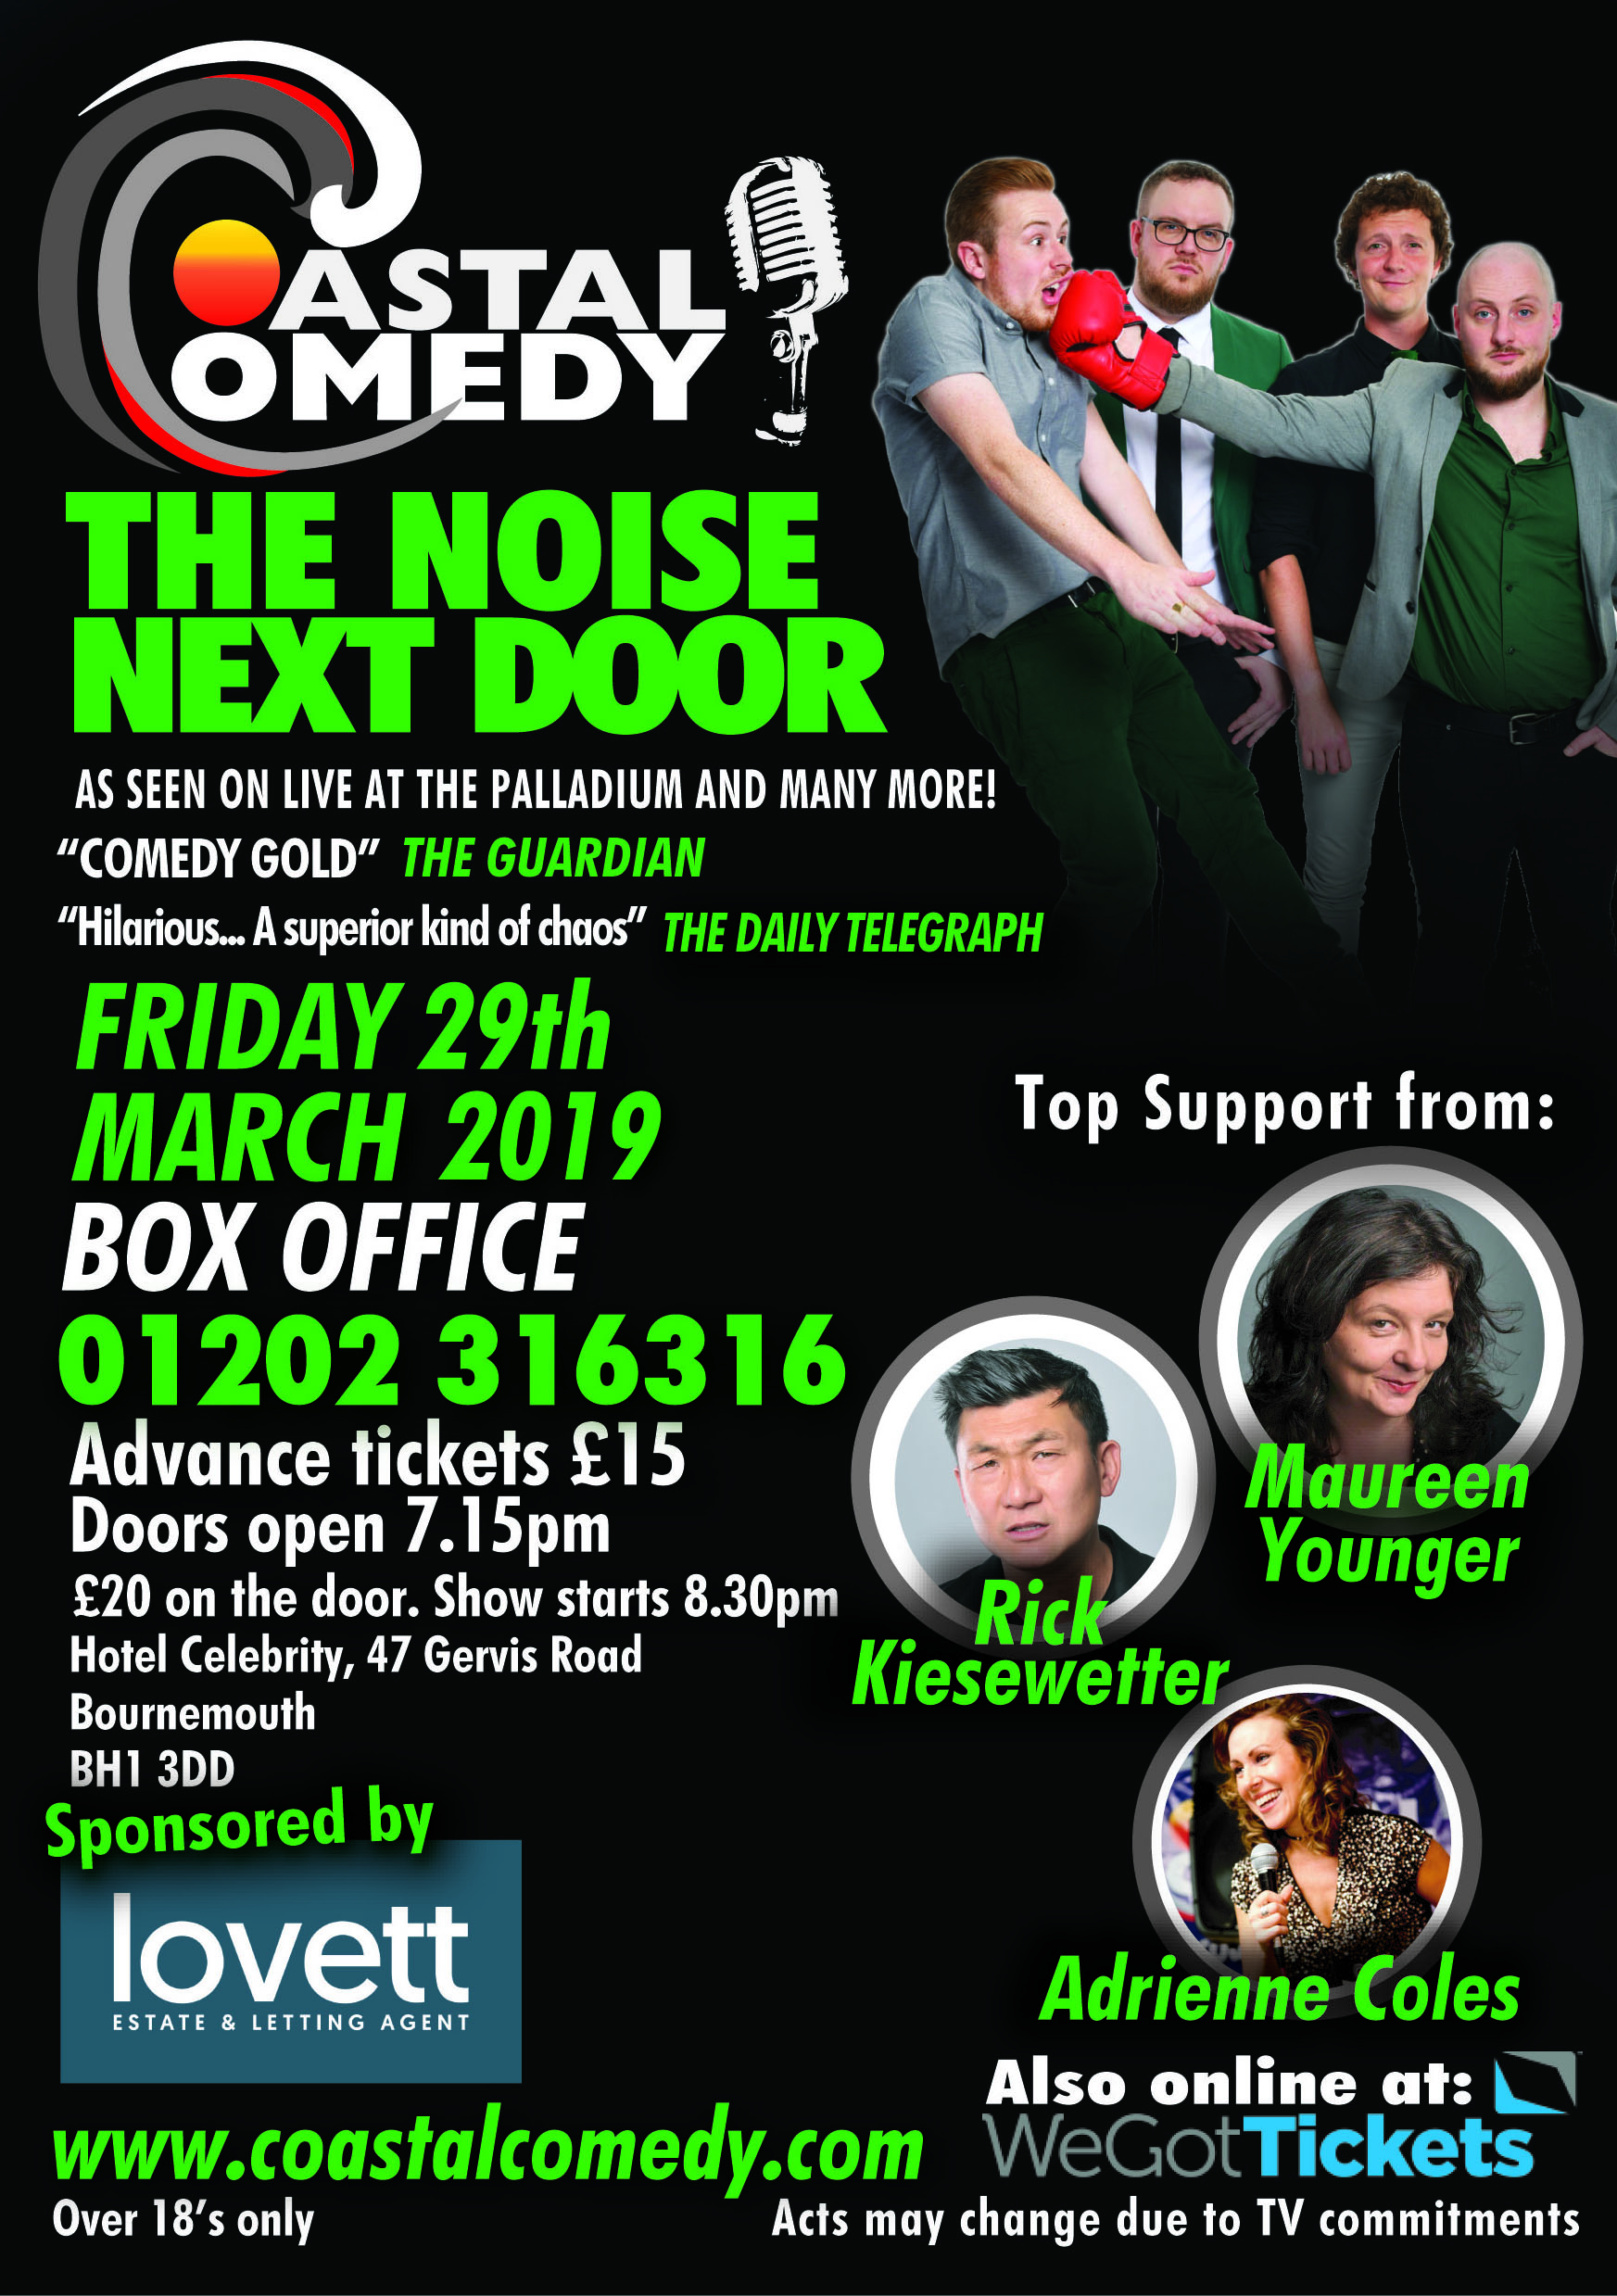 bournemouth, lol, standup, comedy, standup, hotel celebrity, bournemouth, dorset, whatson, funny, jokes, comedian, comic